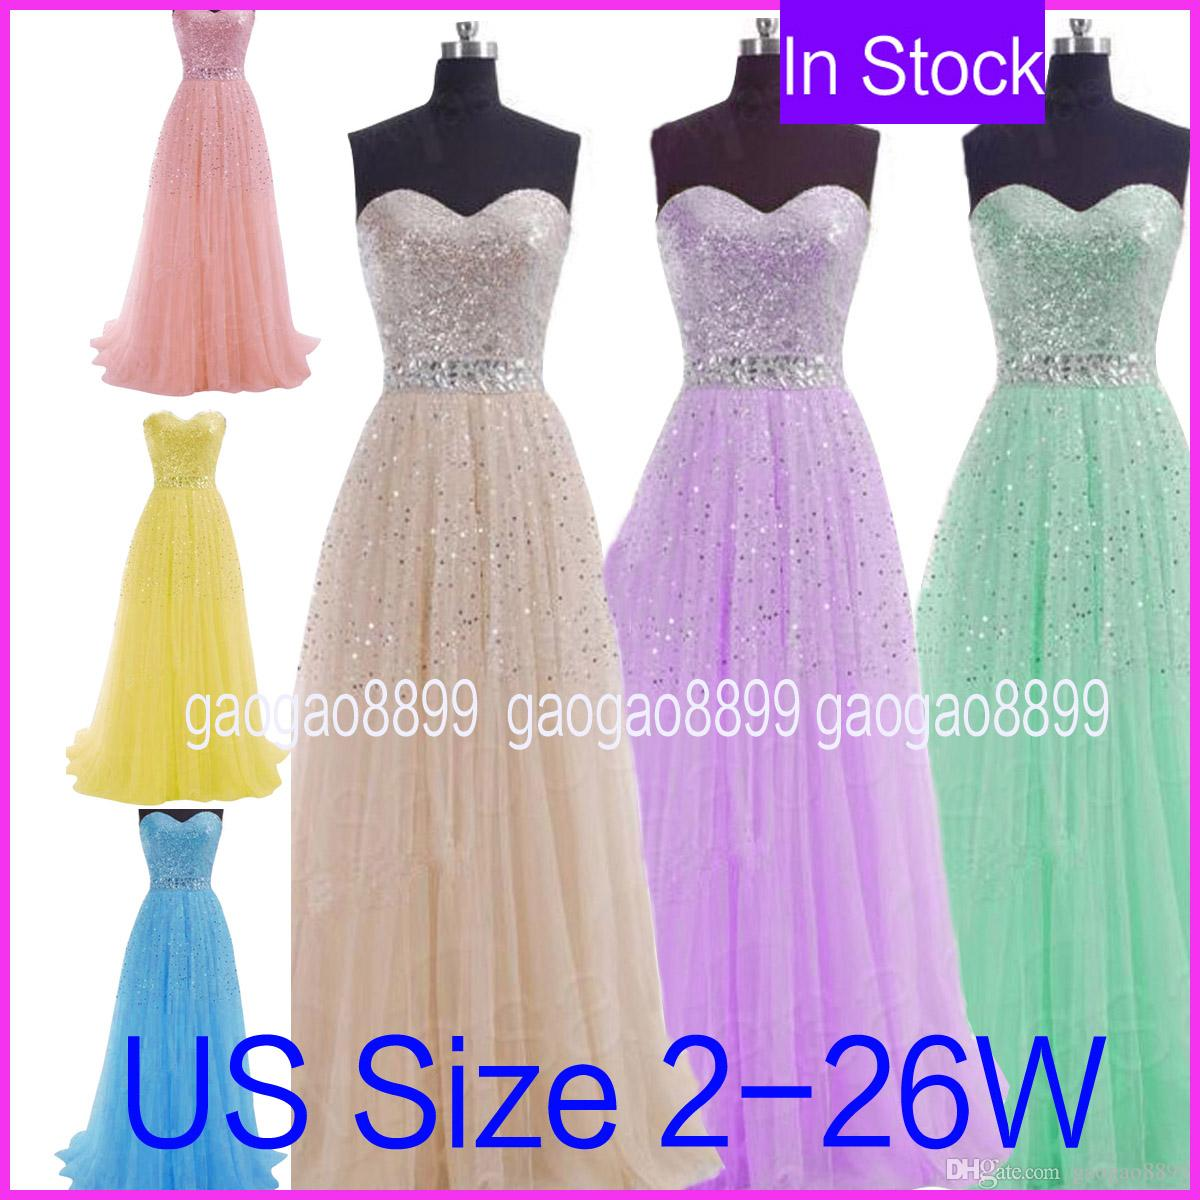 Sequin grey bridesmaid dresses online sequin grey bridesmaid sweetheart sequins tulle evening prom dresses long champagne mint pink blue grey lilac beads bridesmaid party gowns 2015 in stock cheap ombrellifo Choice Image